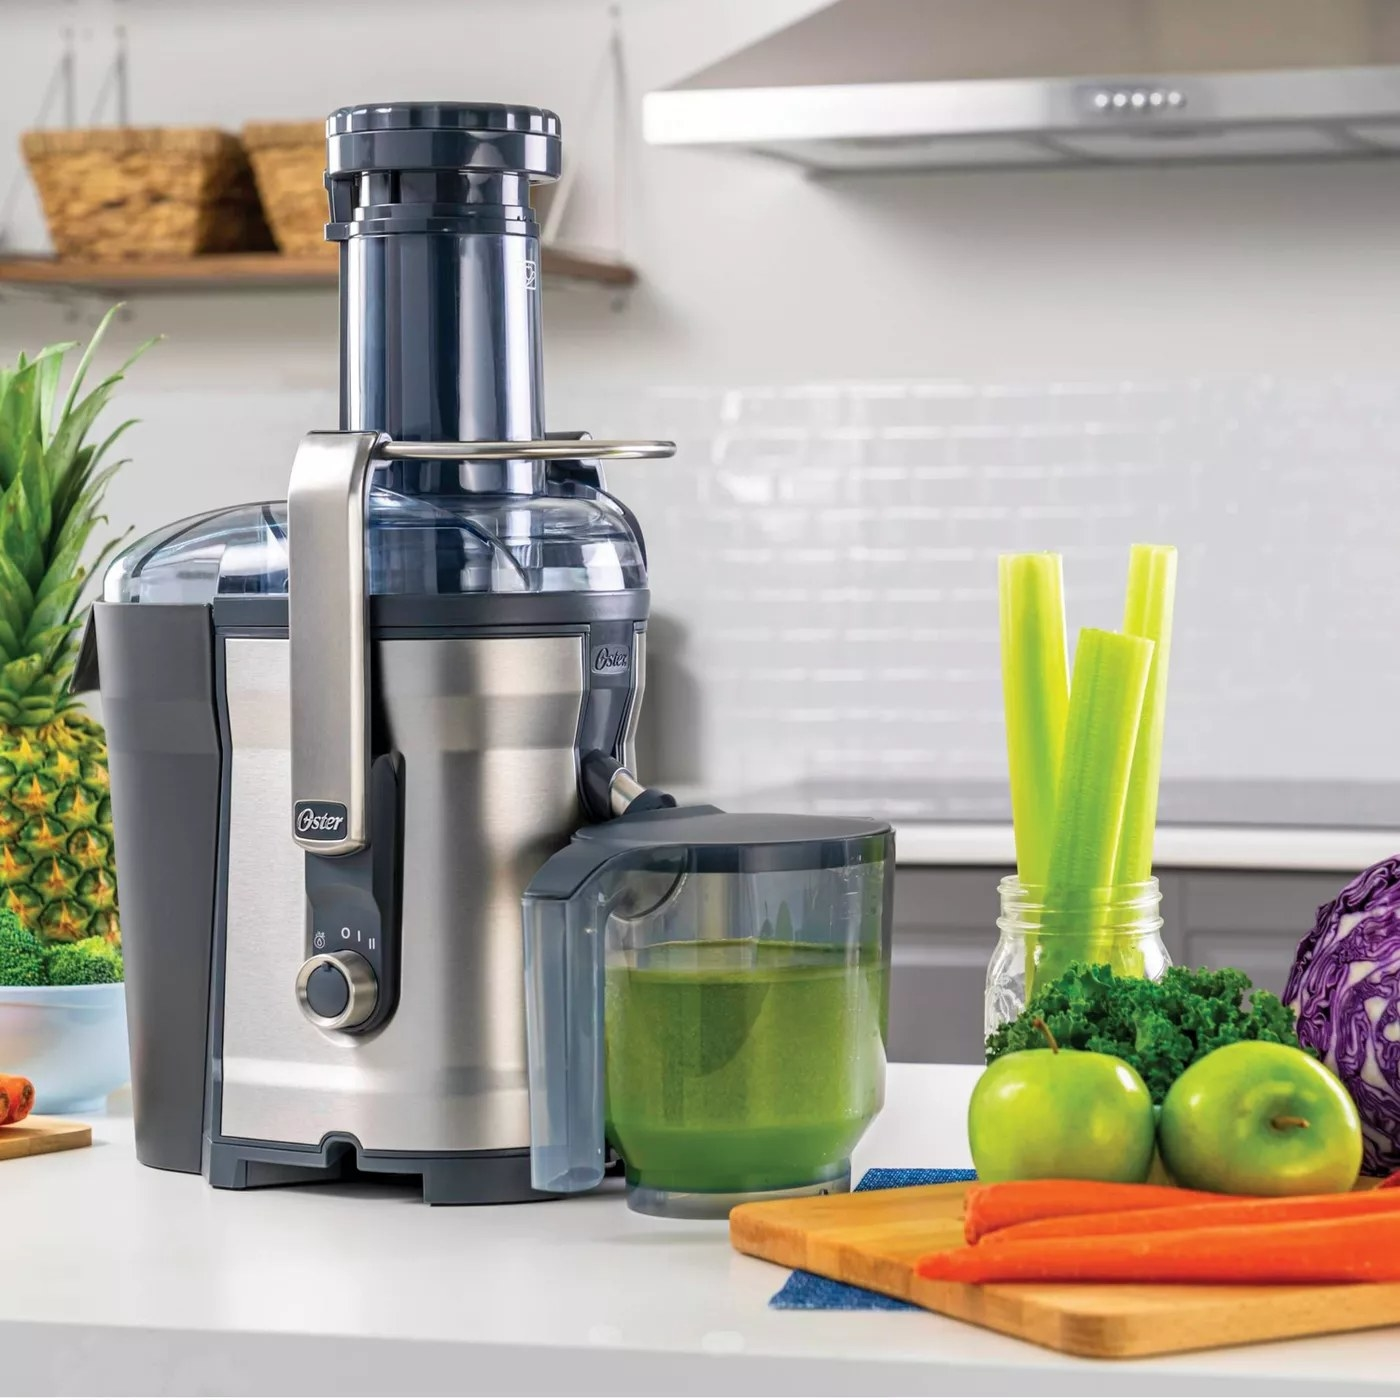 The Oster juicer